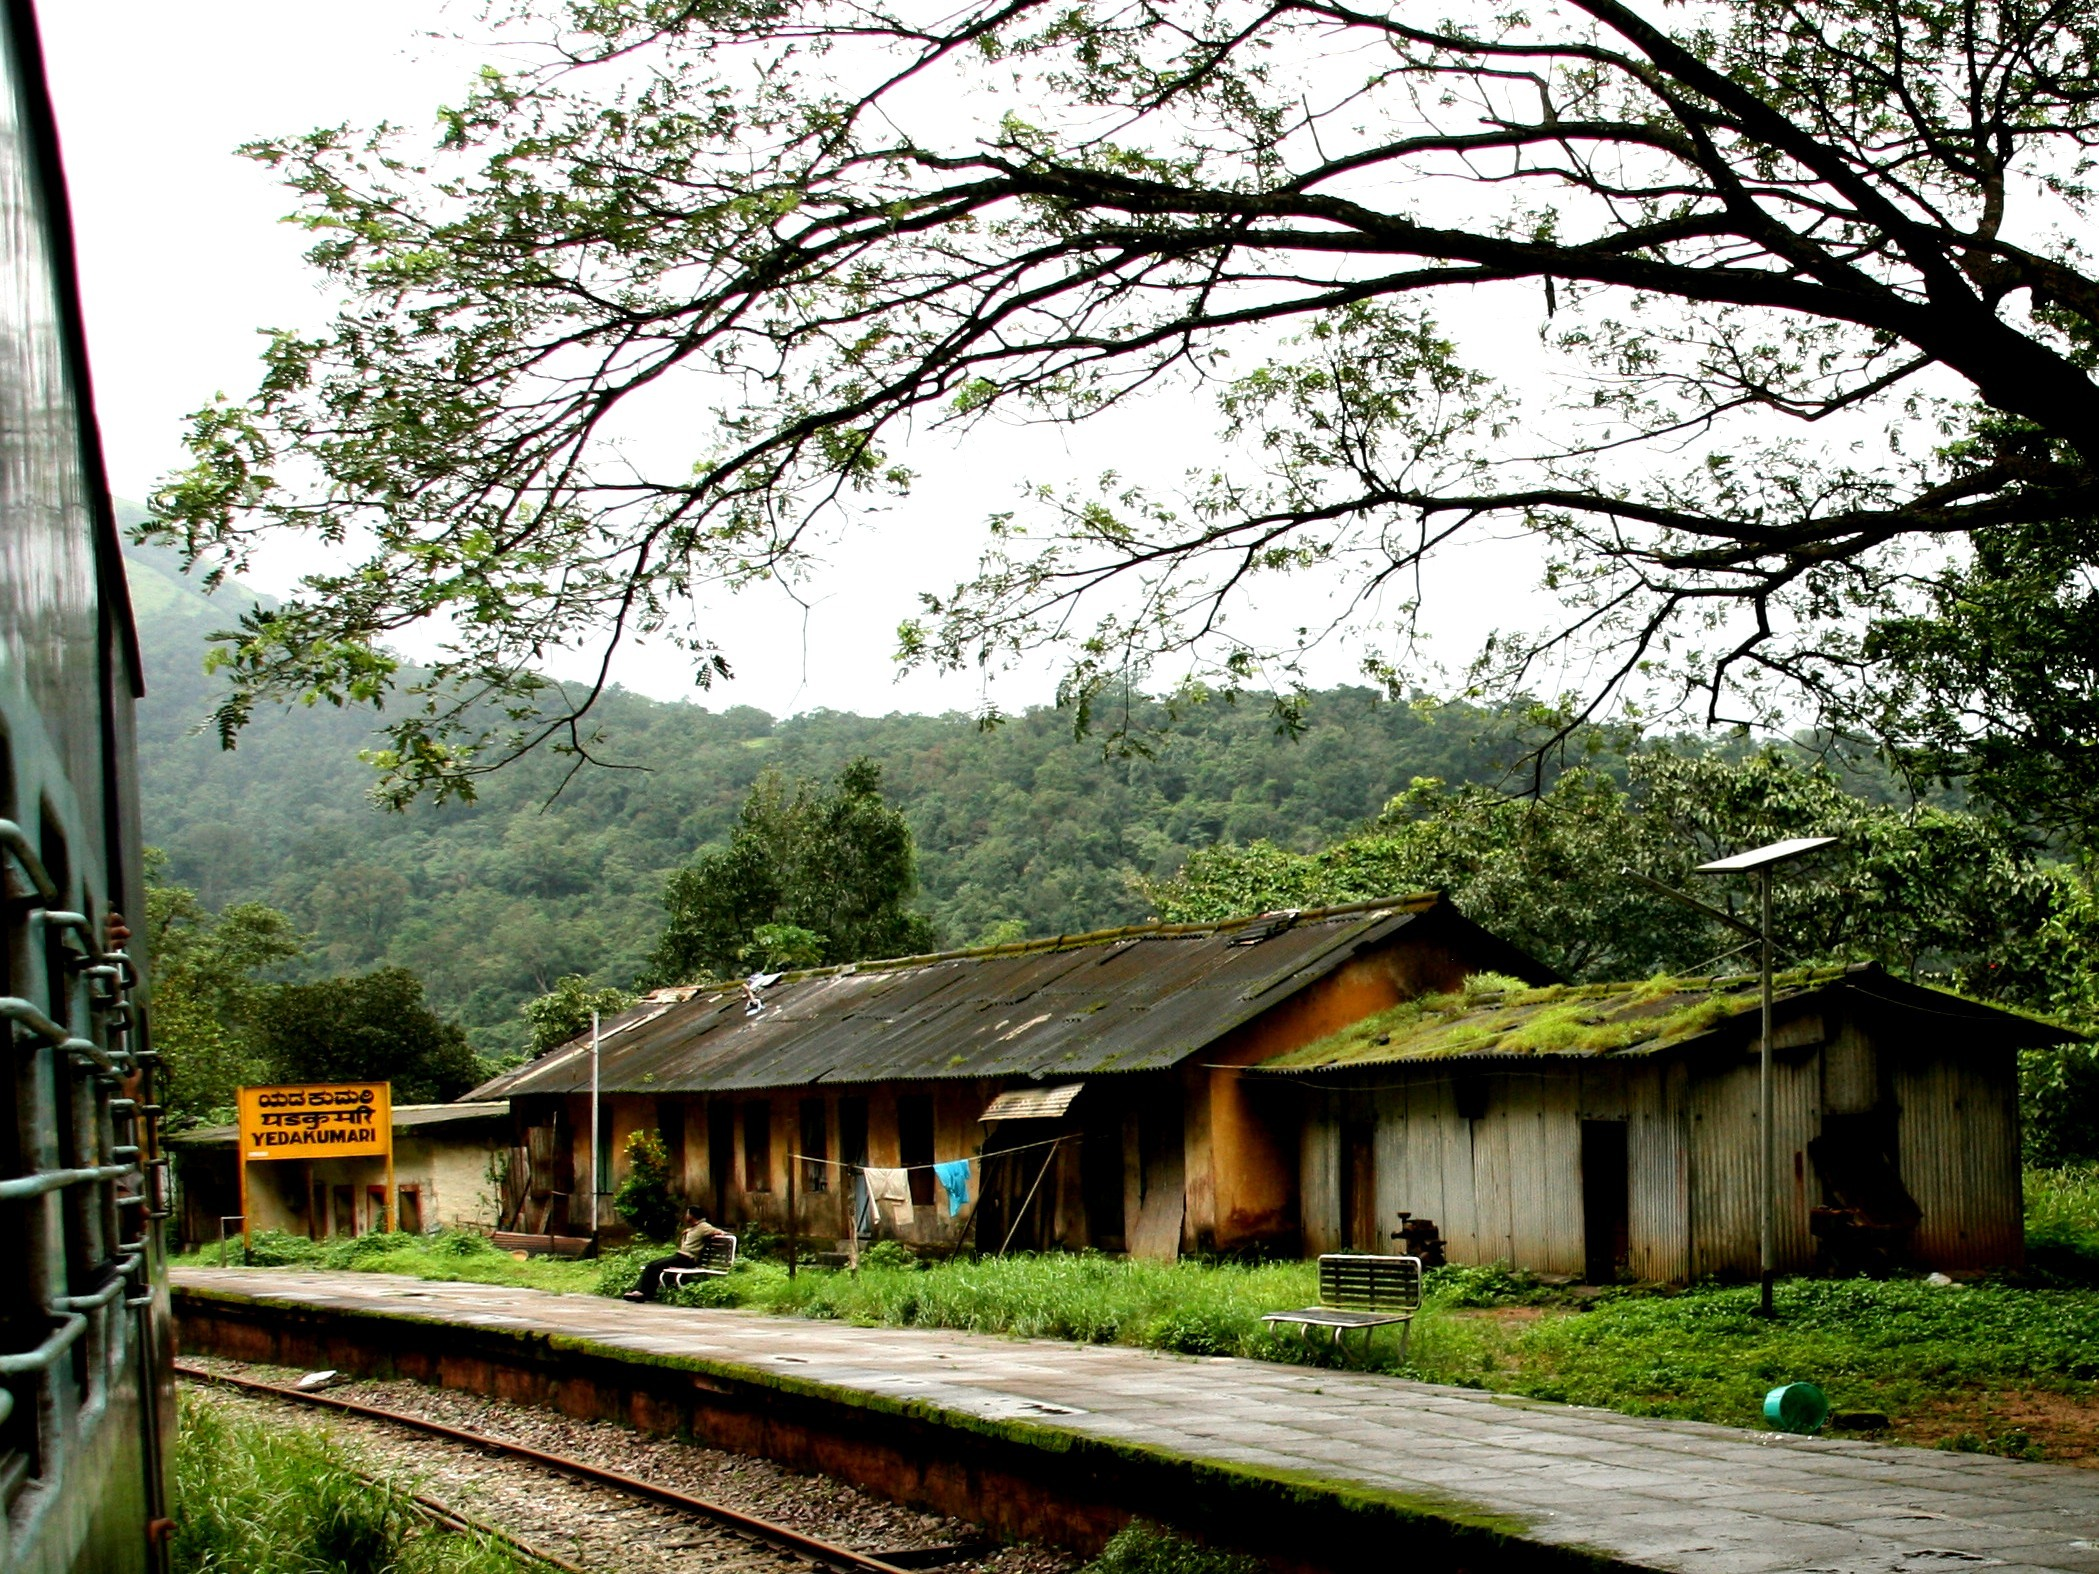 Yadakumari station marks the halfway point of the stretch.